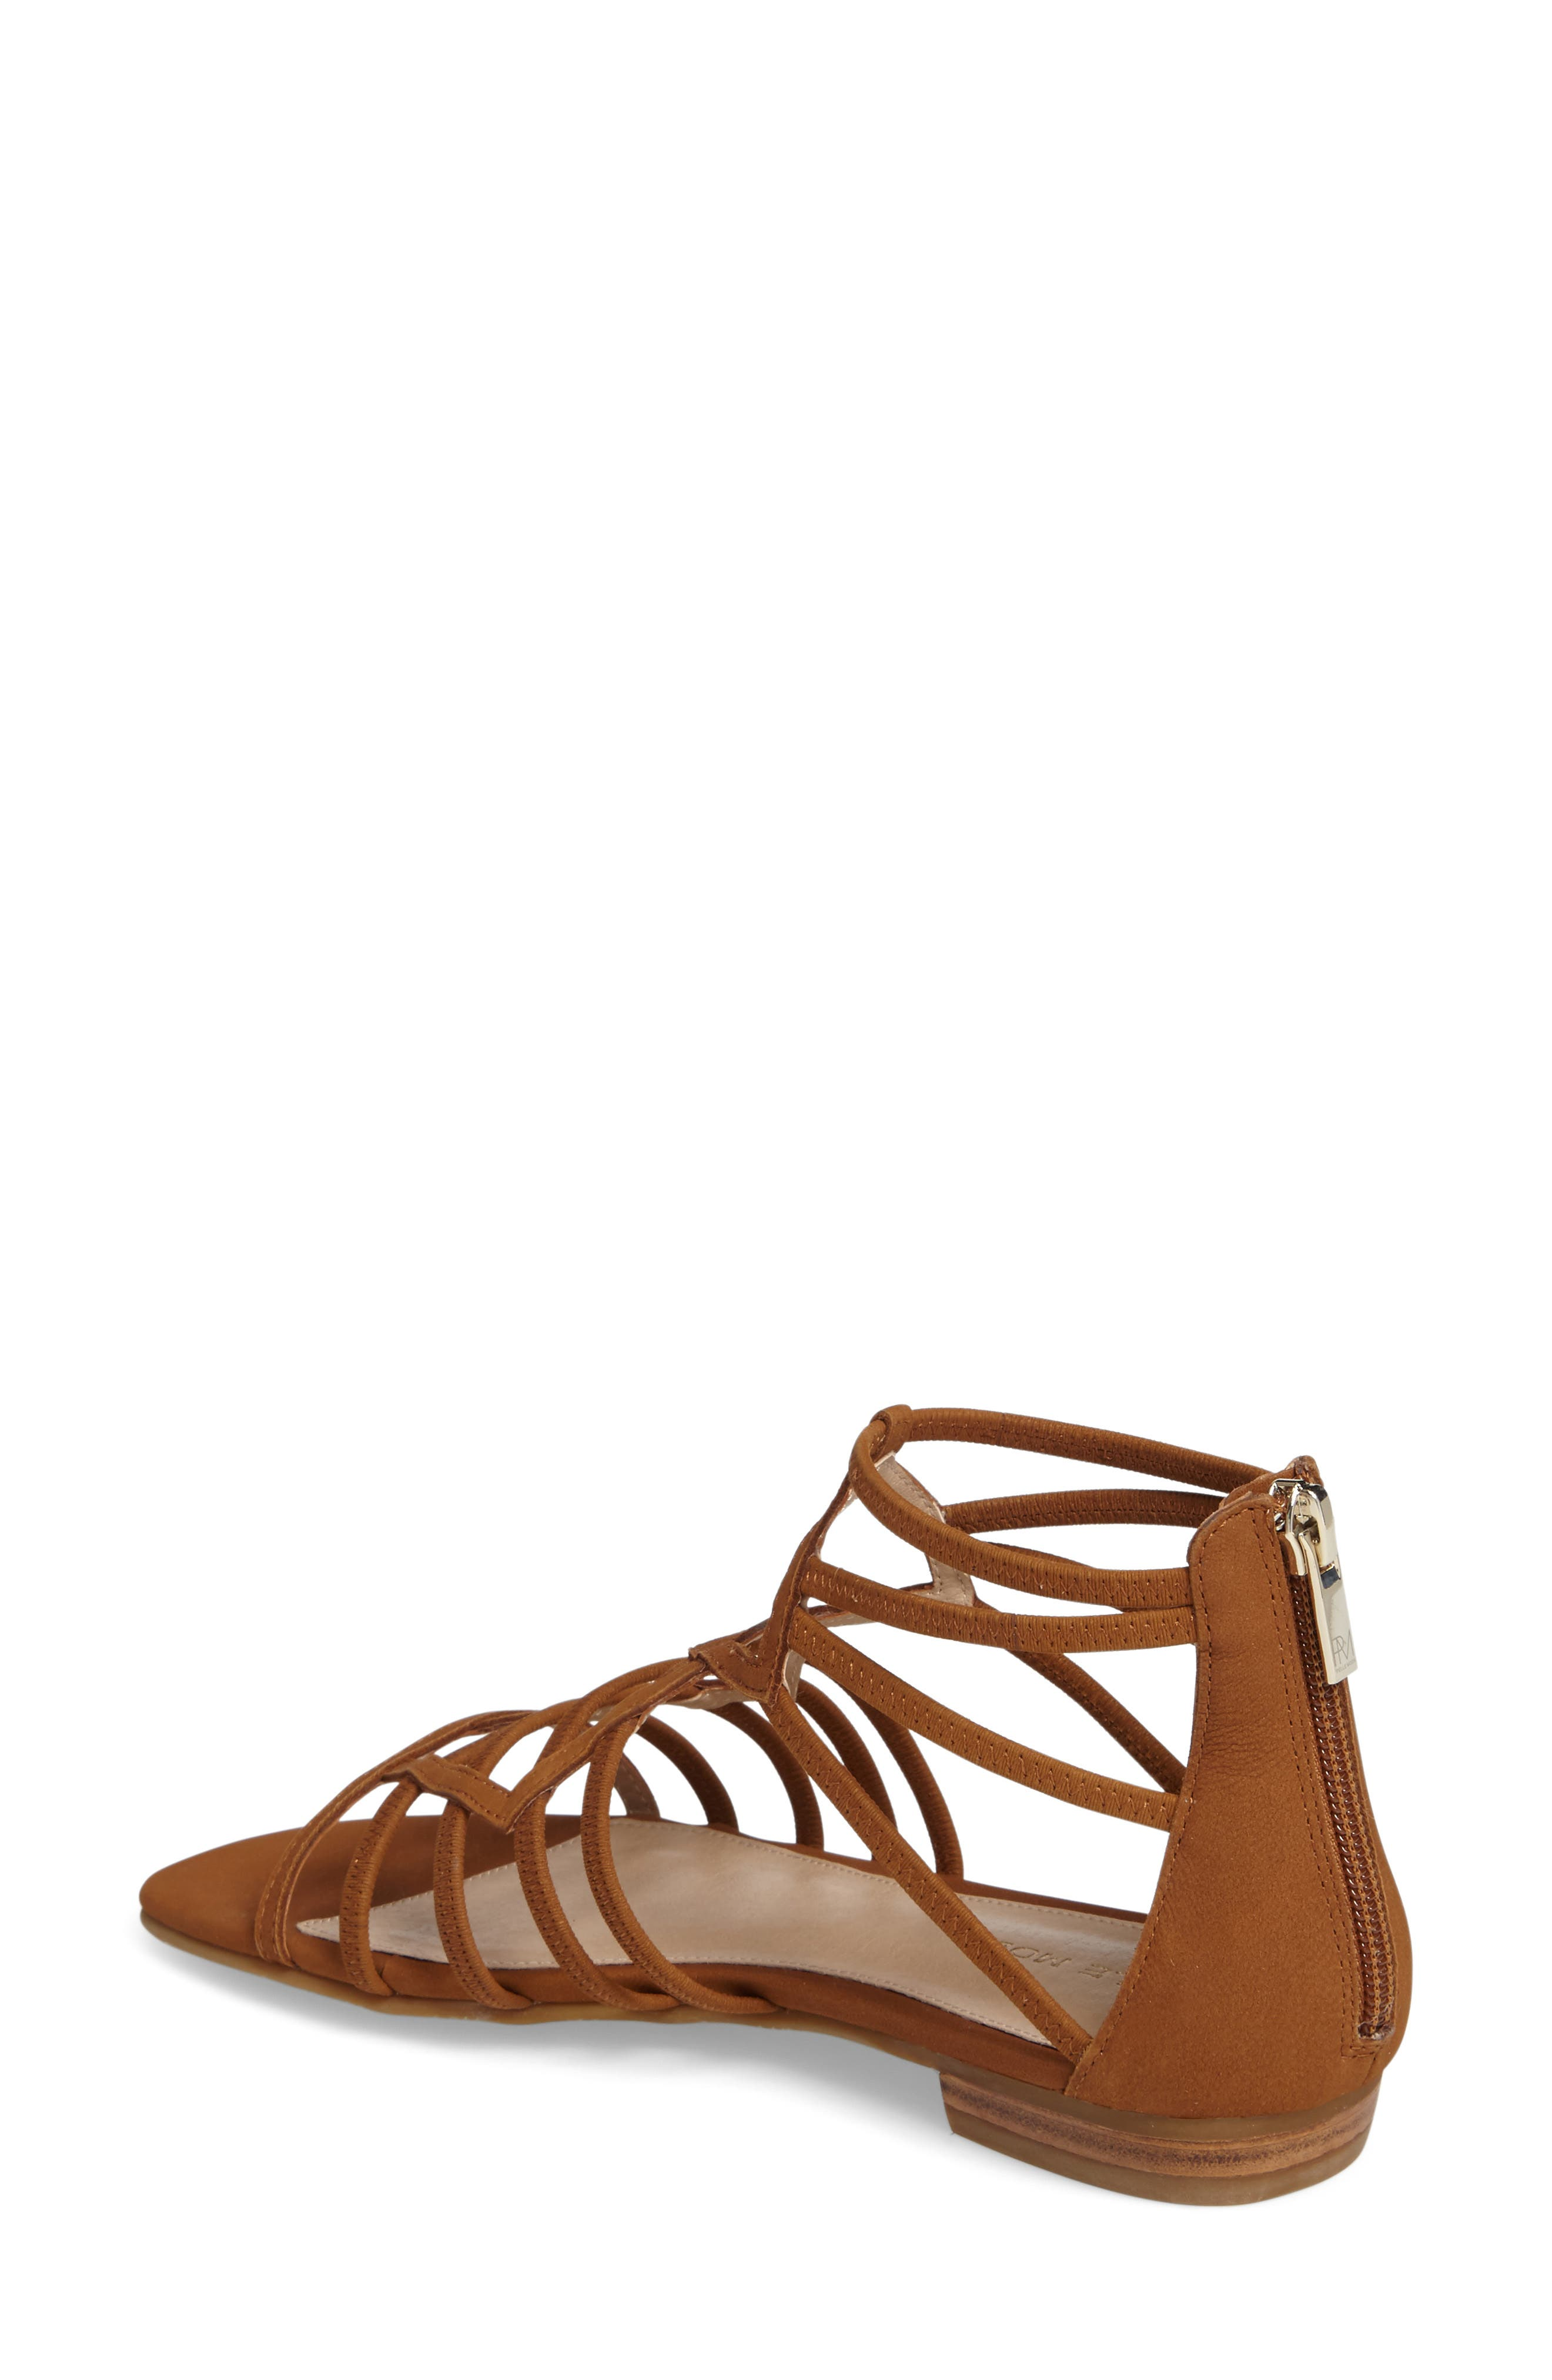 Brazil Strappy Sandal,                             Alternate thumbnail 2, color,                             Luggage Leather